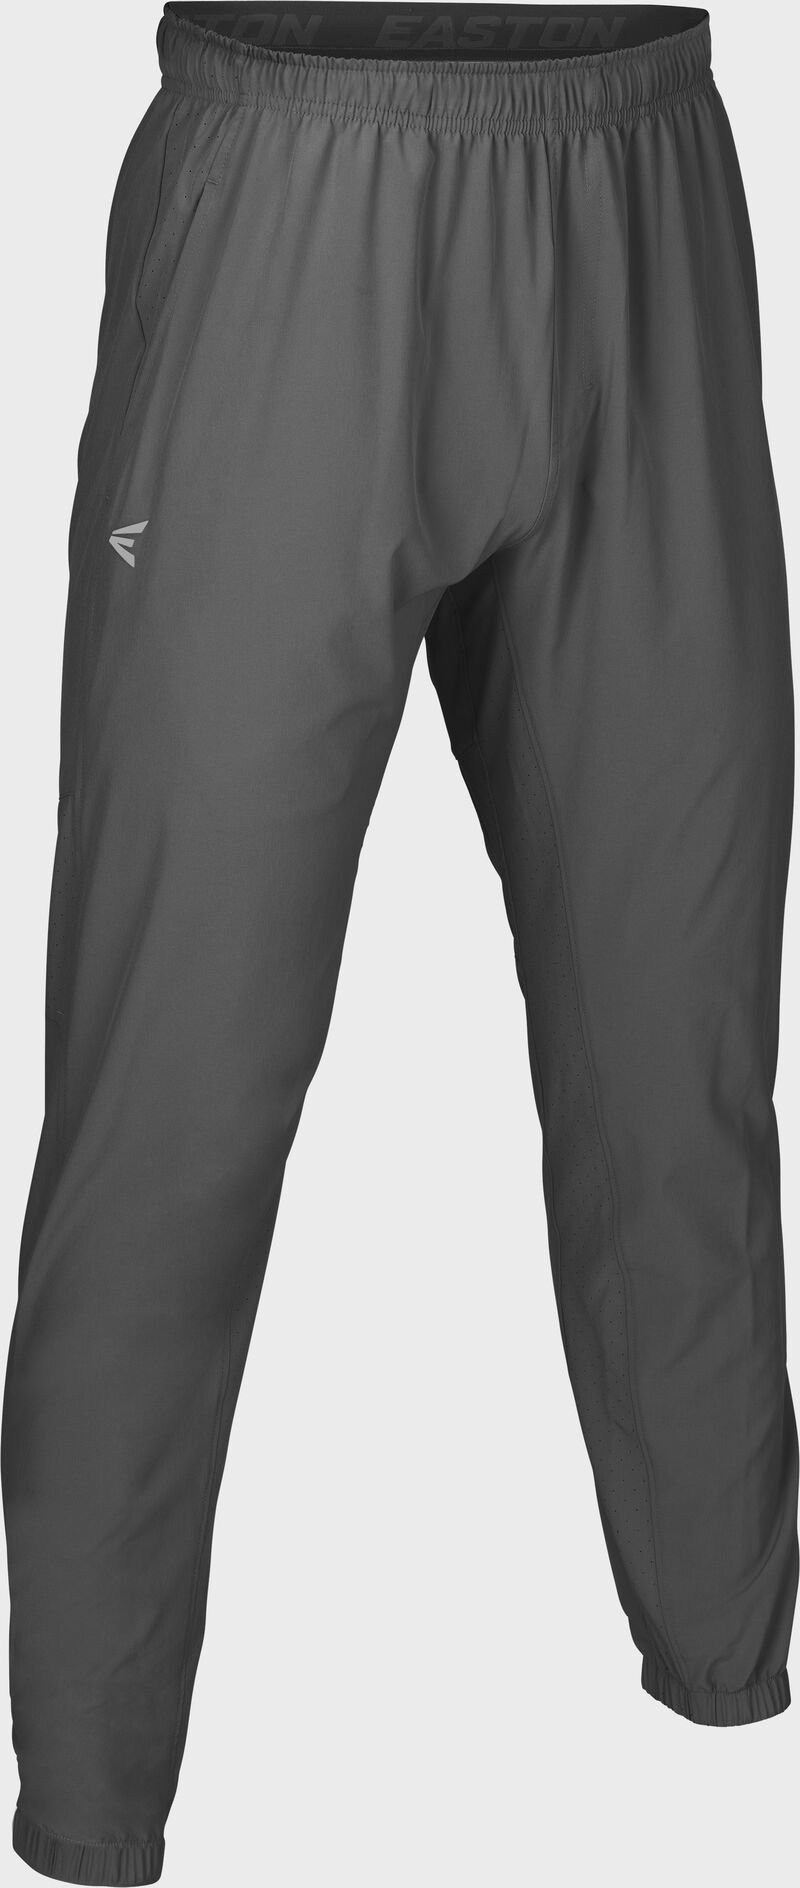 Adult Gameday Stretch Woven Pant